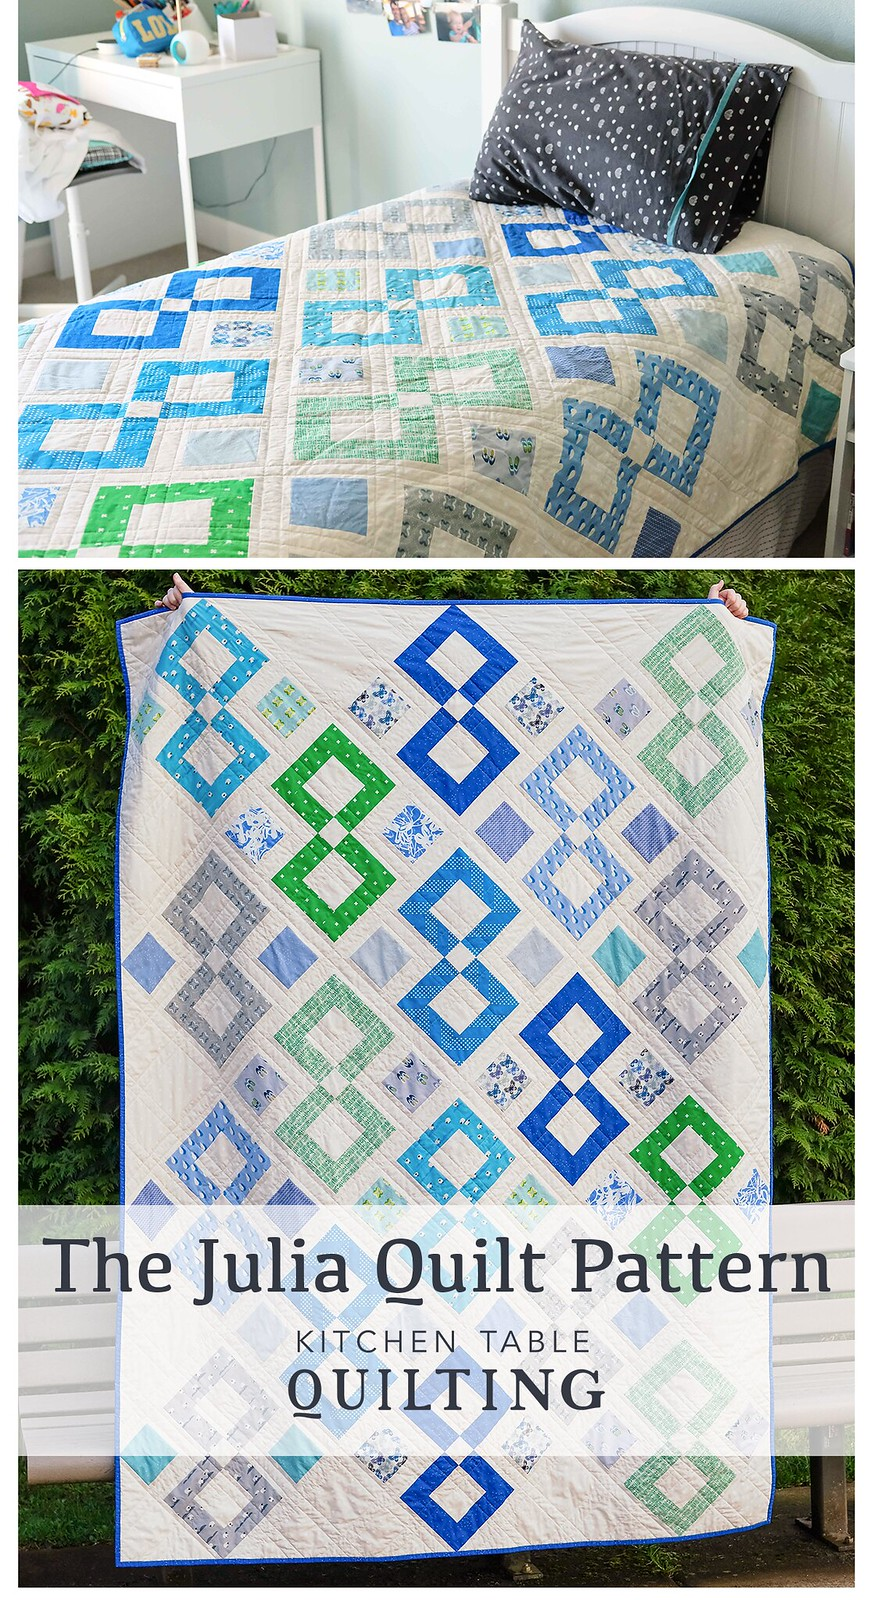 The Julia Quilt Pattern - Kitchen Table Quilting